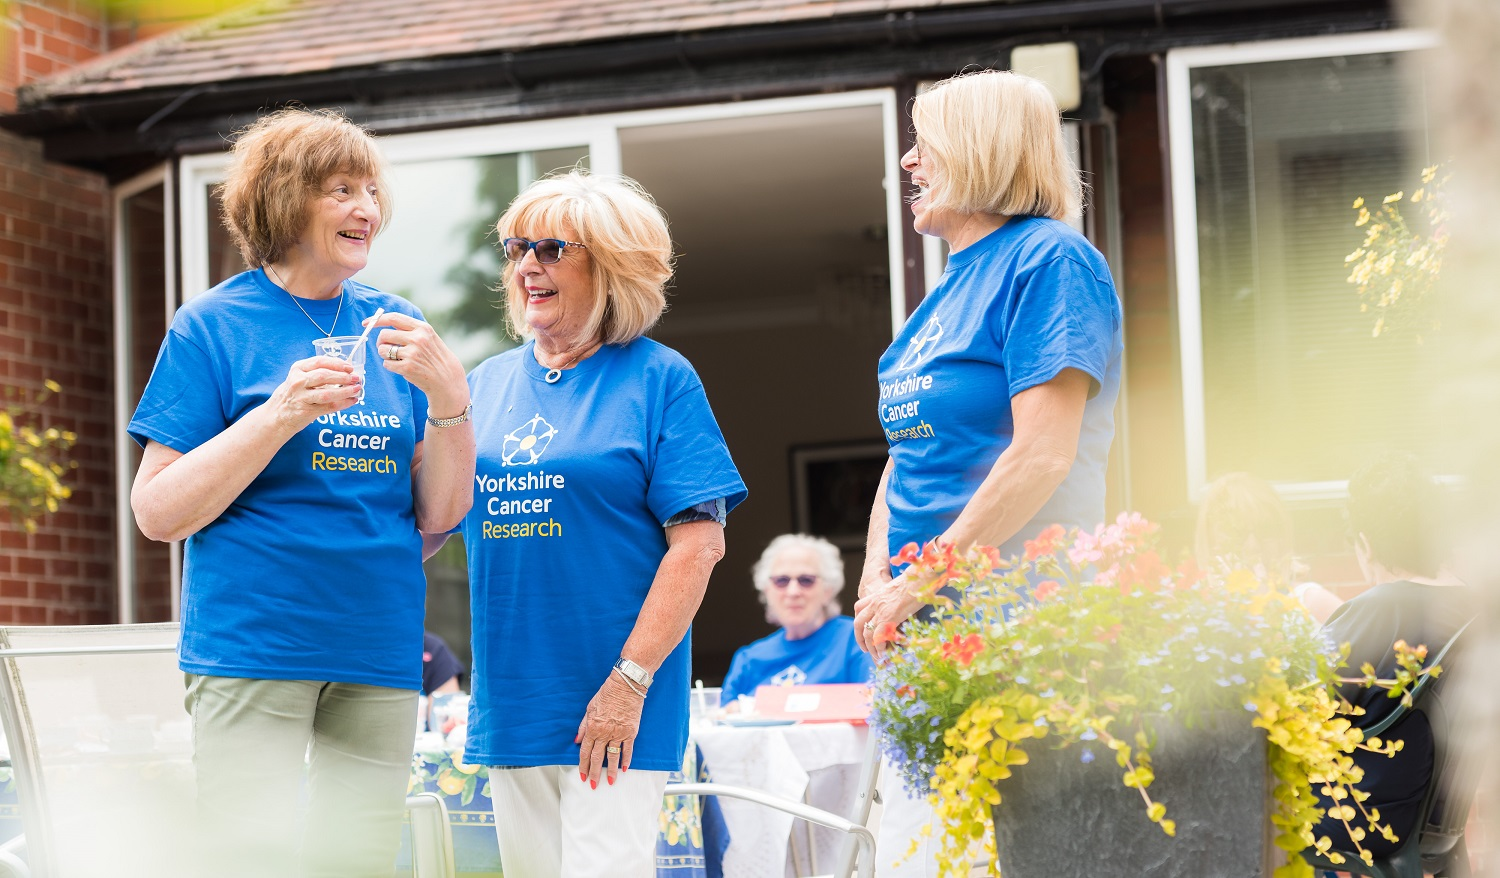 Yorkshire Cancer Research volunteer group in Leeds